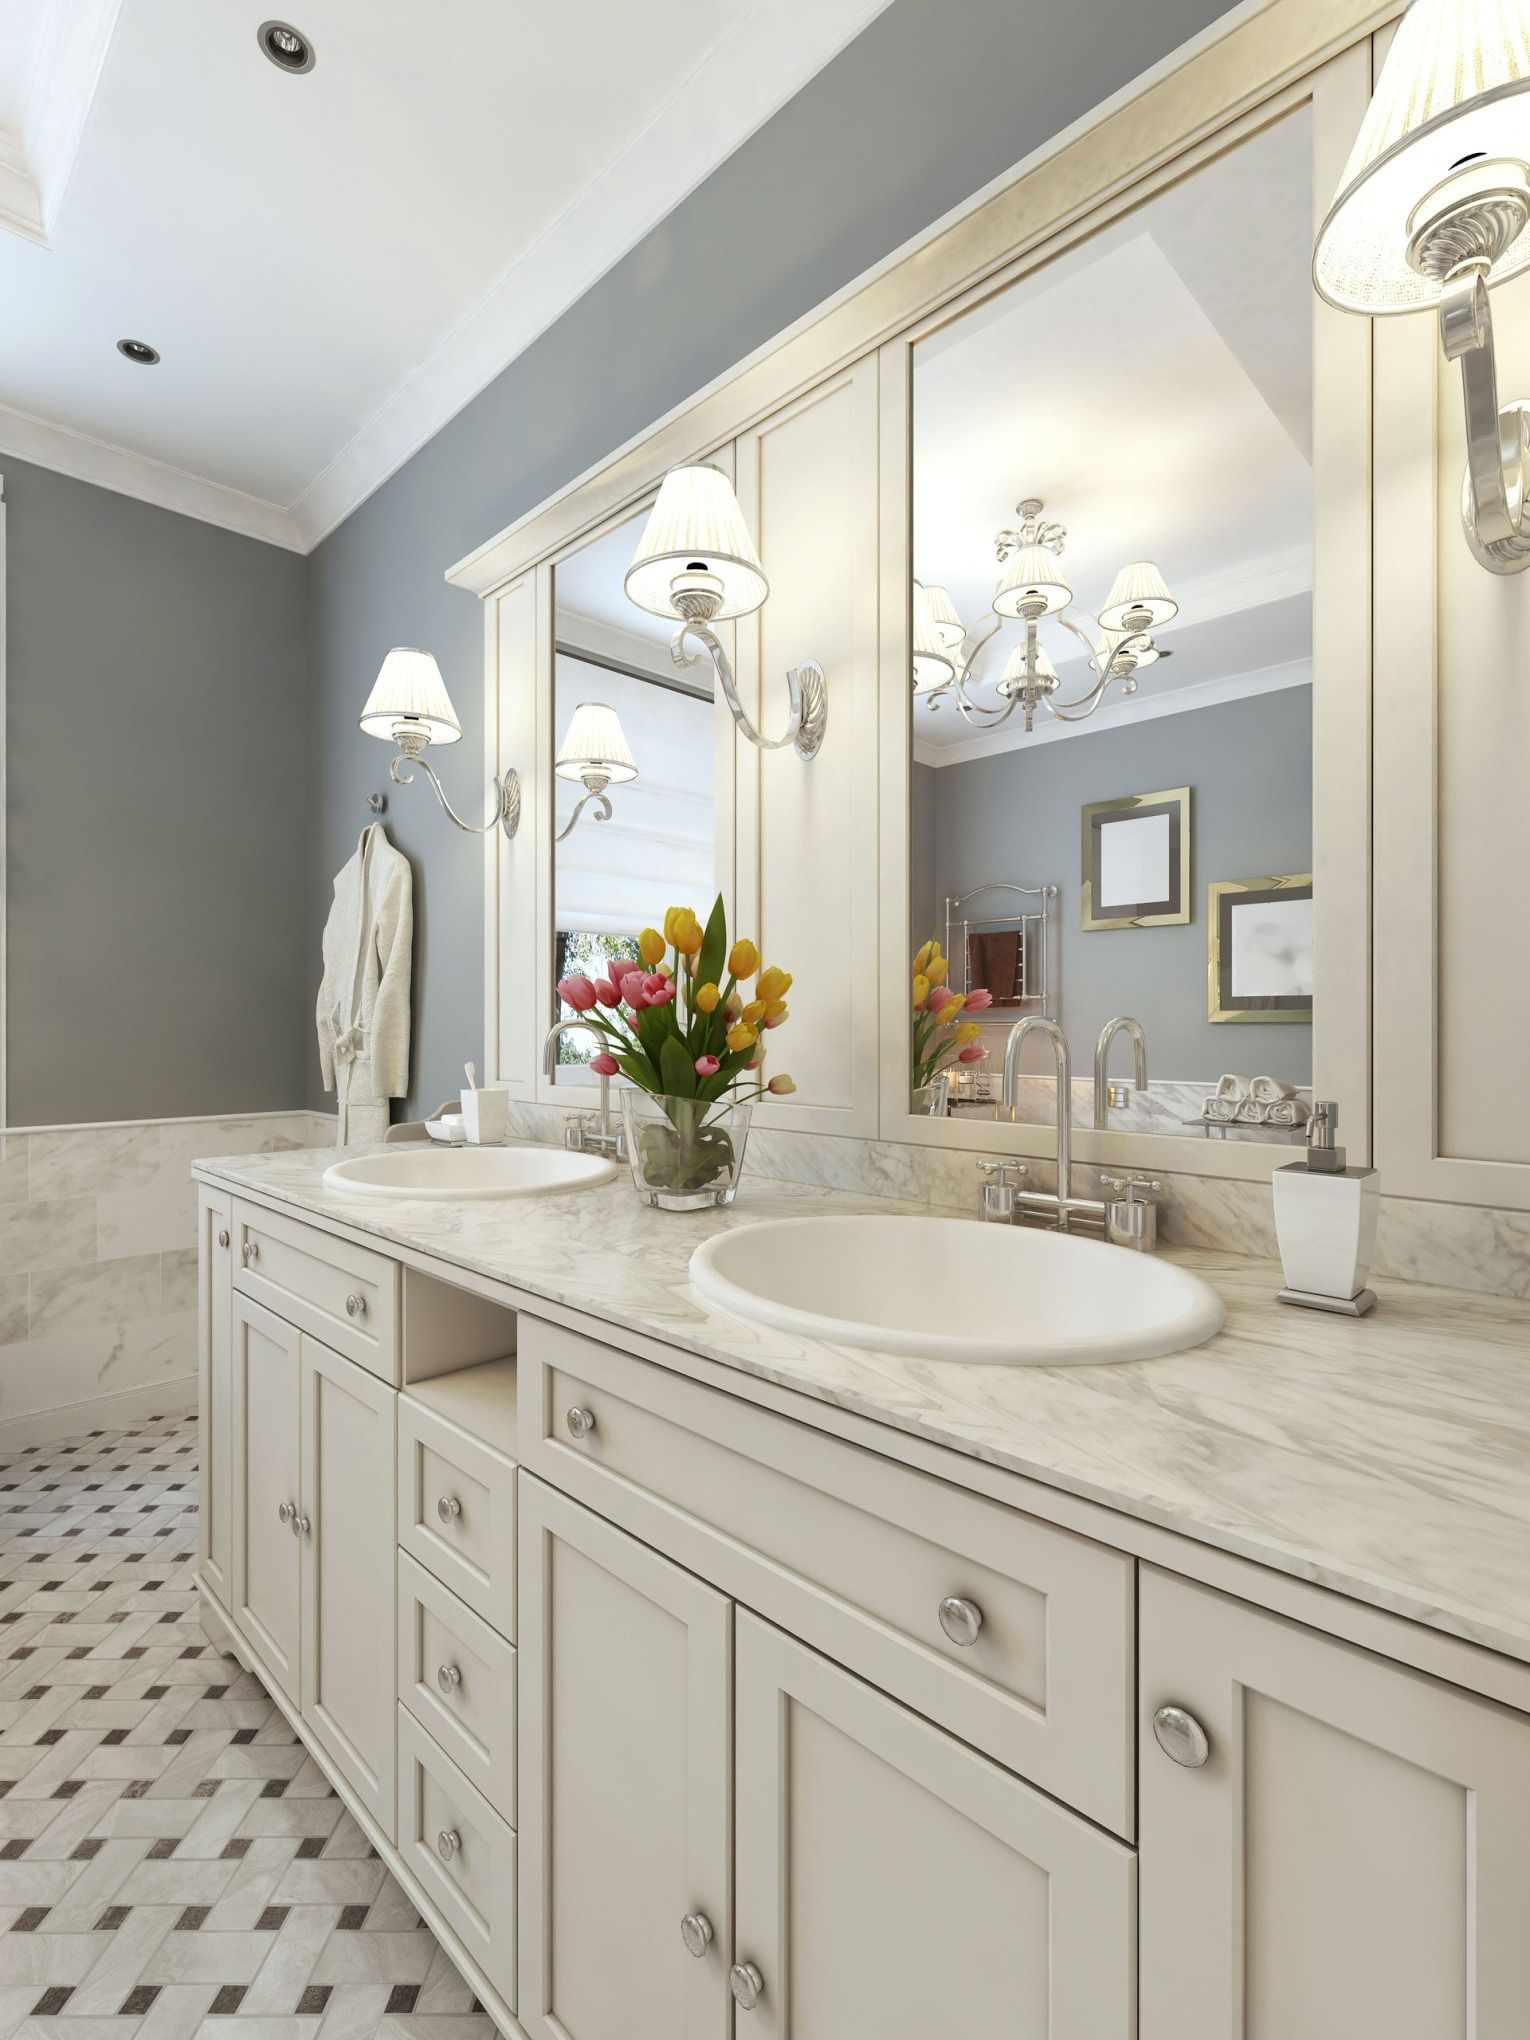 Blog Post Bath Spaces 4 Thrifty Trends For Bathroom Lighting